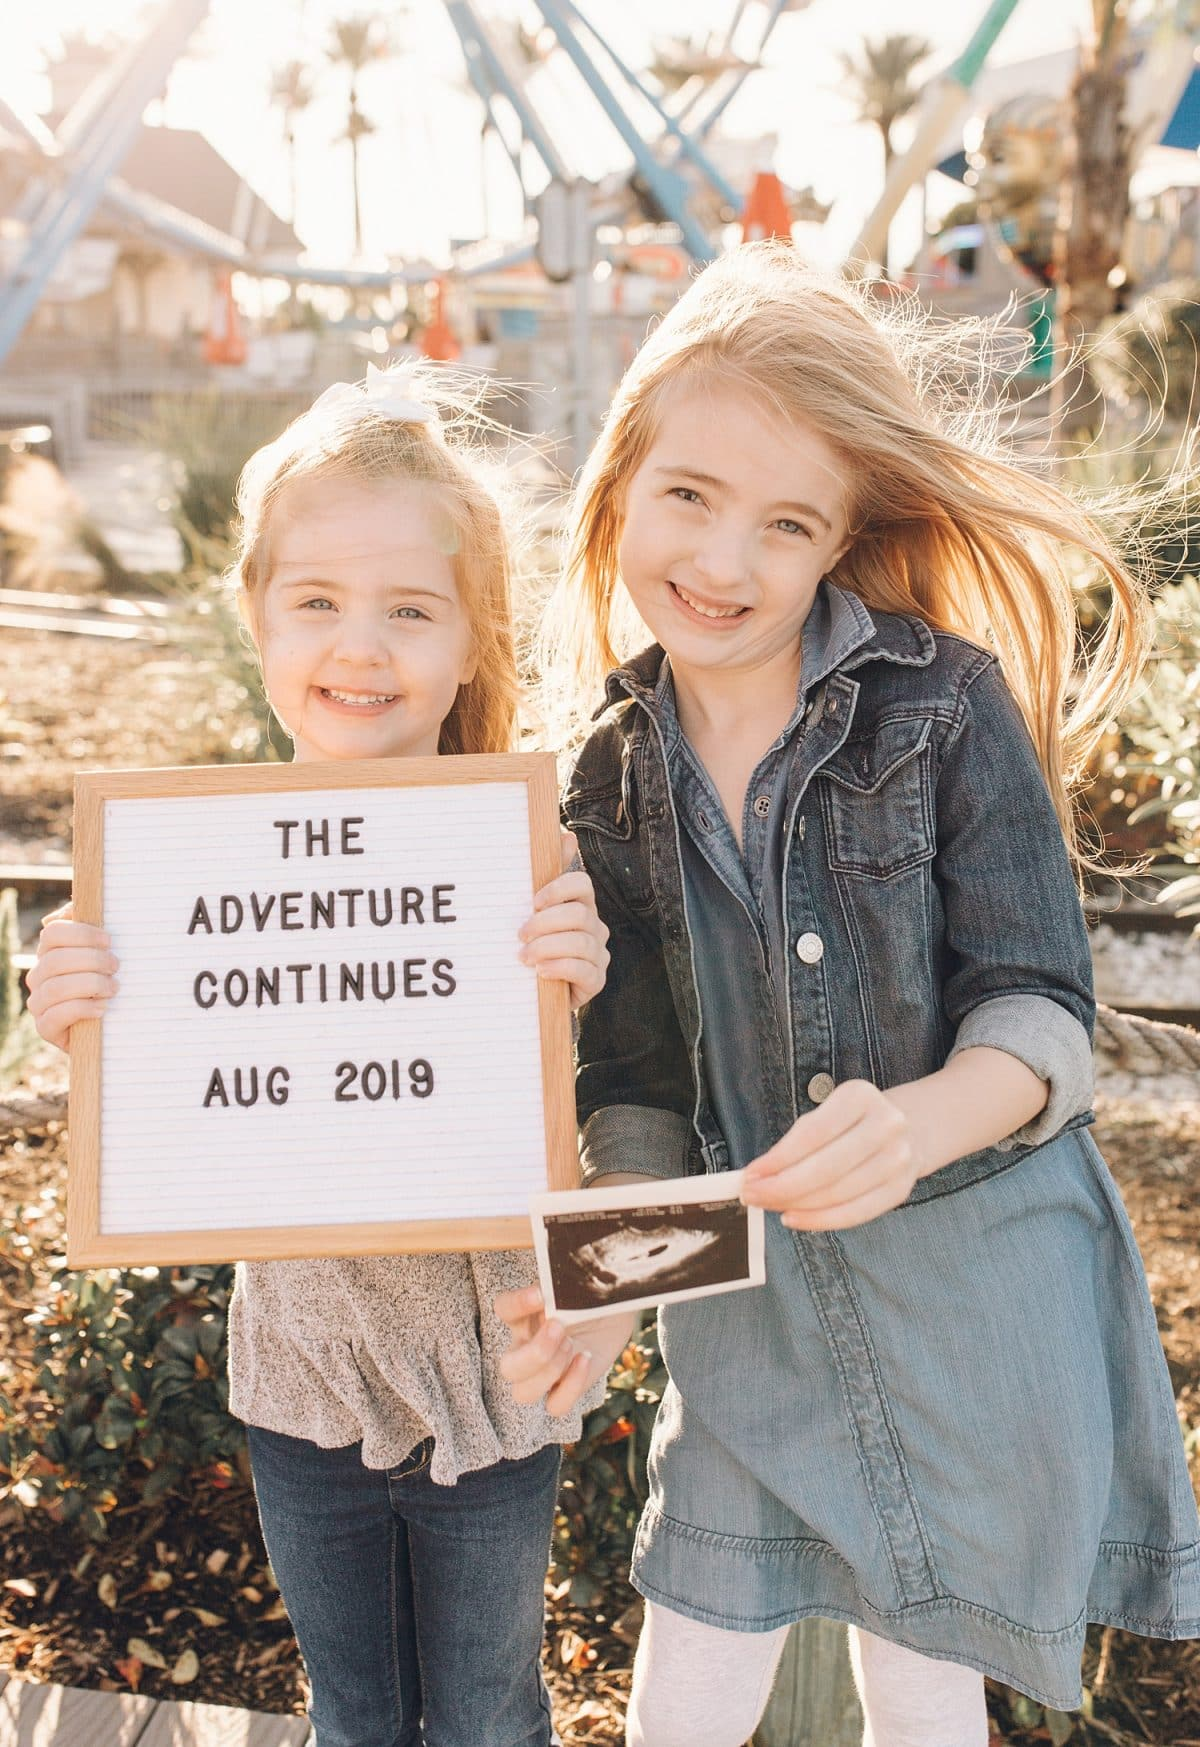 Houston mommy blogger Meg O. announces her third pregnancy - baby #3 here we come!